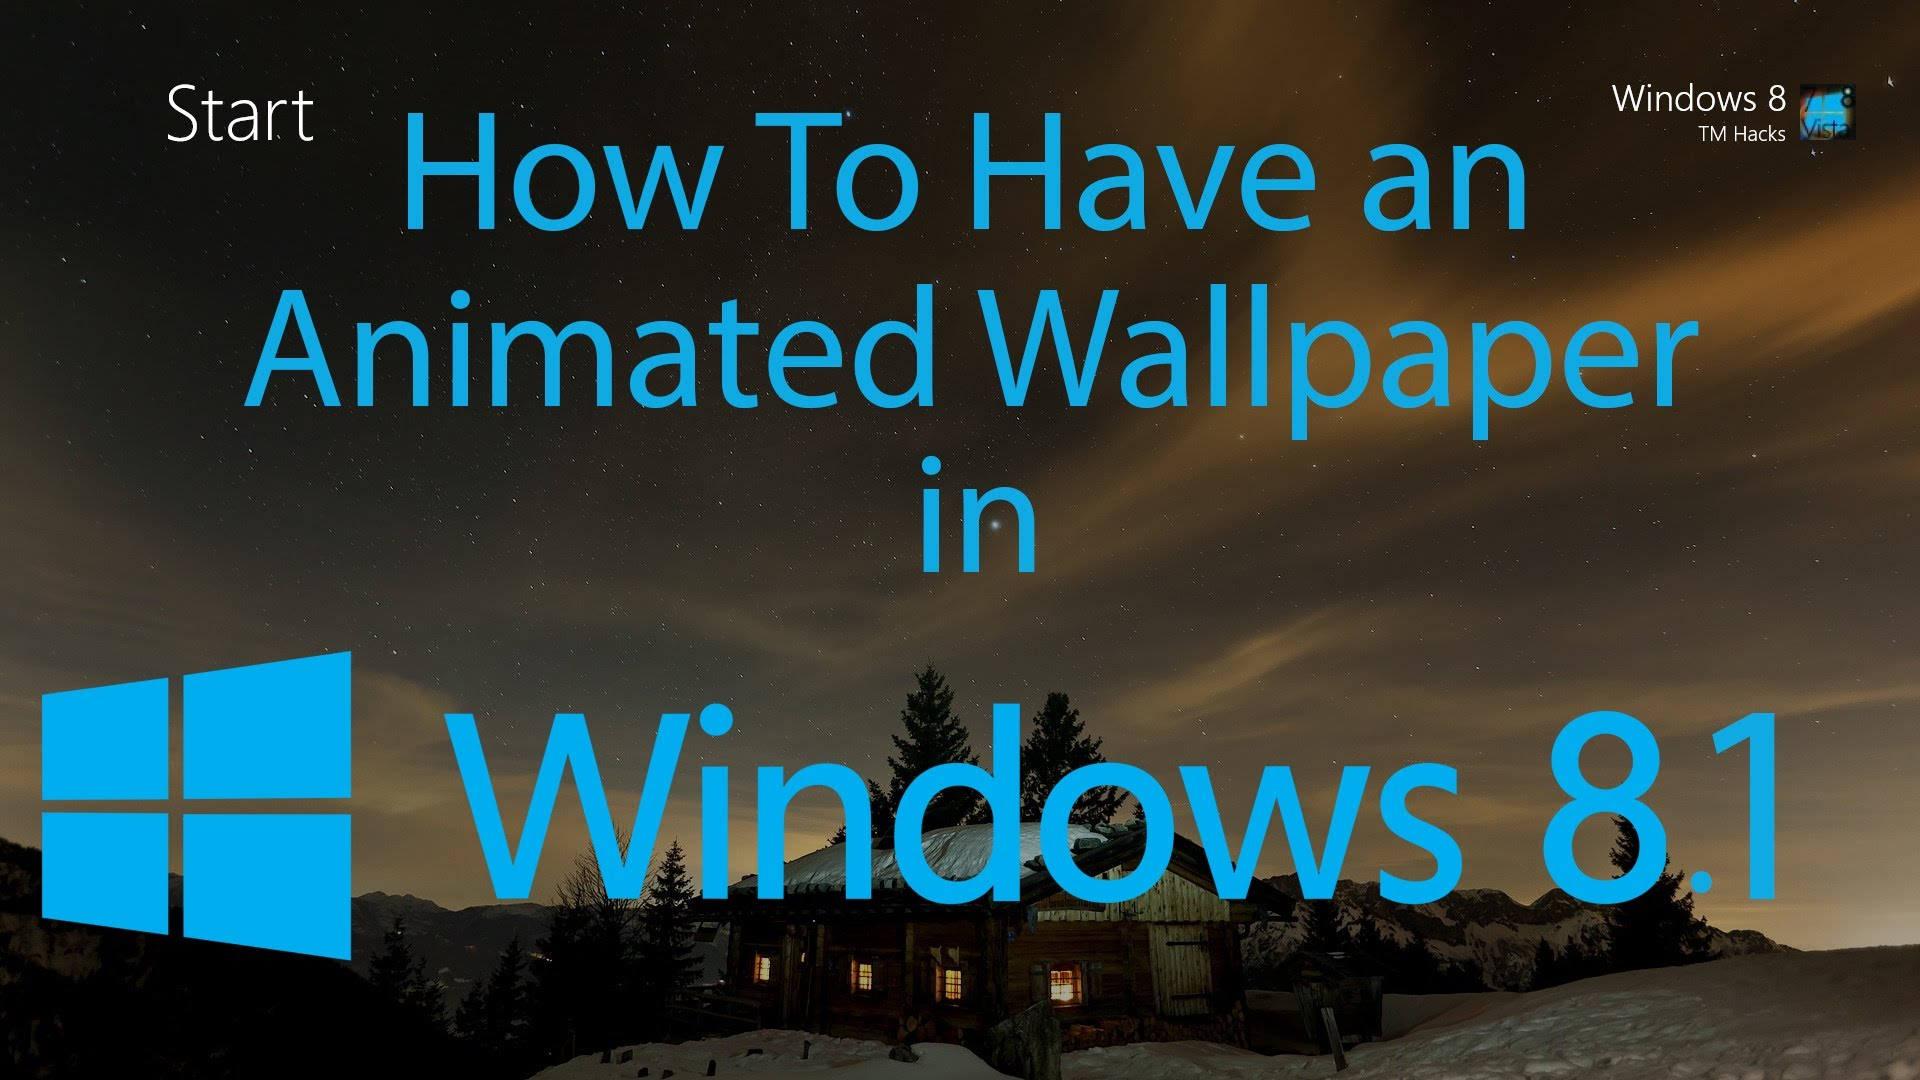 How To Have an Animated Wallpaper in Windows 81 1920x1080